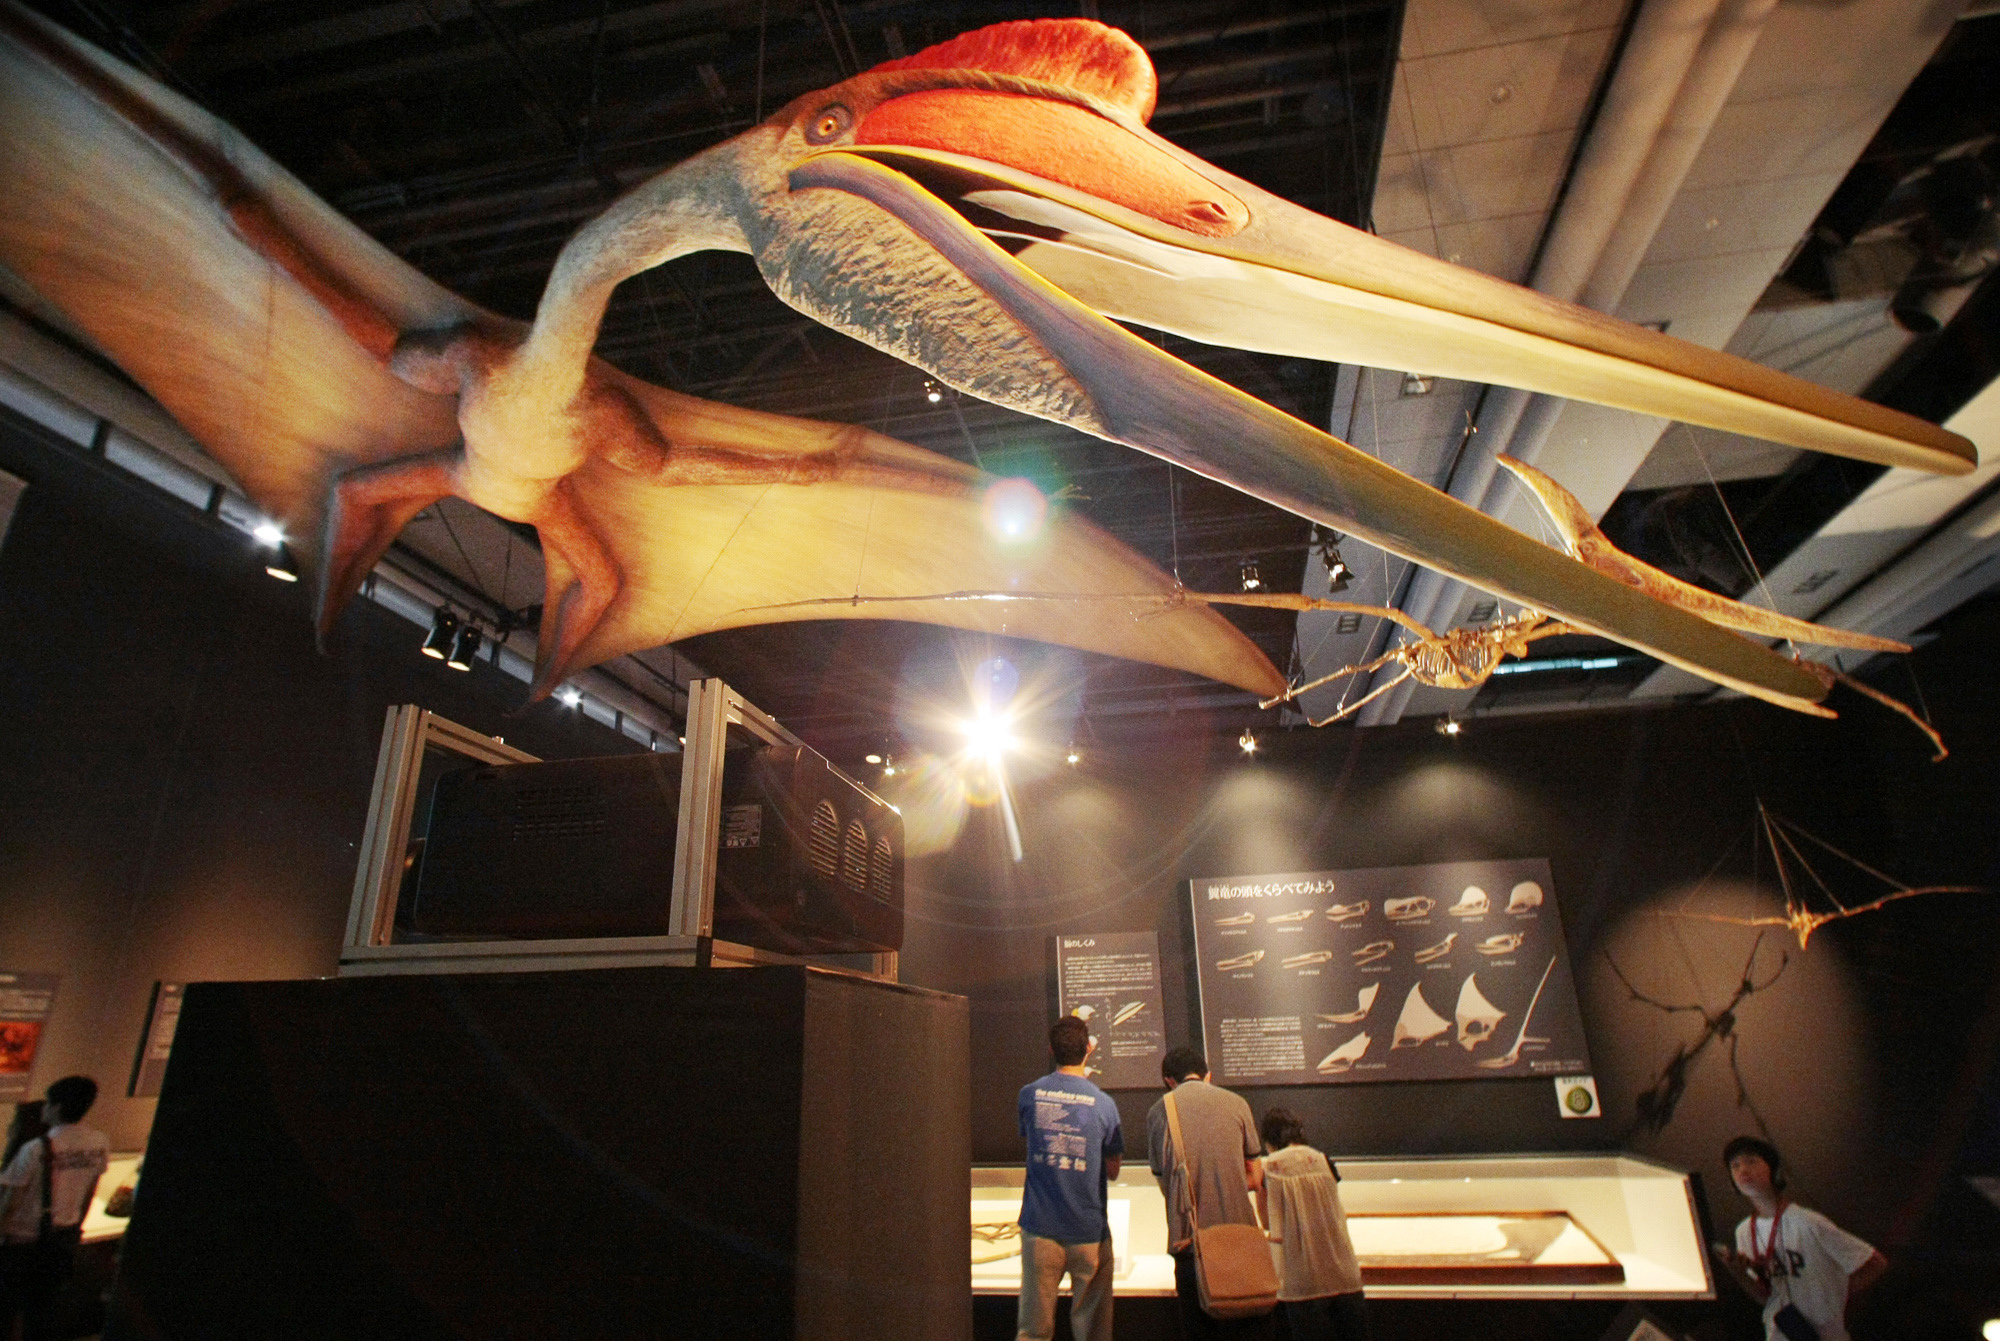 """A visitor looks at a reconstructed biological model of a """"Quetzalcoatlus northropi"""" at the """"Pterosaurs; Rulers of the Skies in the Age of Dinosaurs"""" exhibition at The National Museum of Emerging Science and Innovation in Tokyo, Saturday, June 28, 2008."""